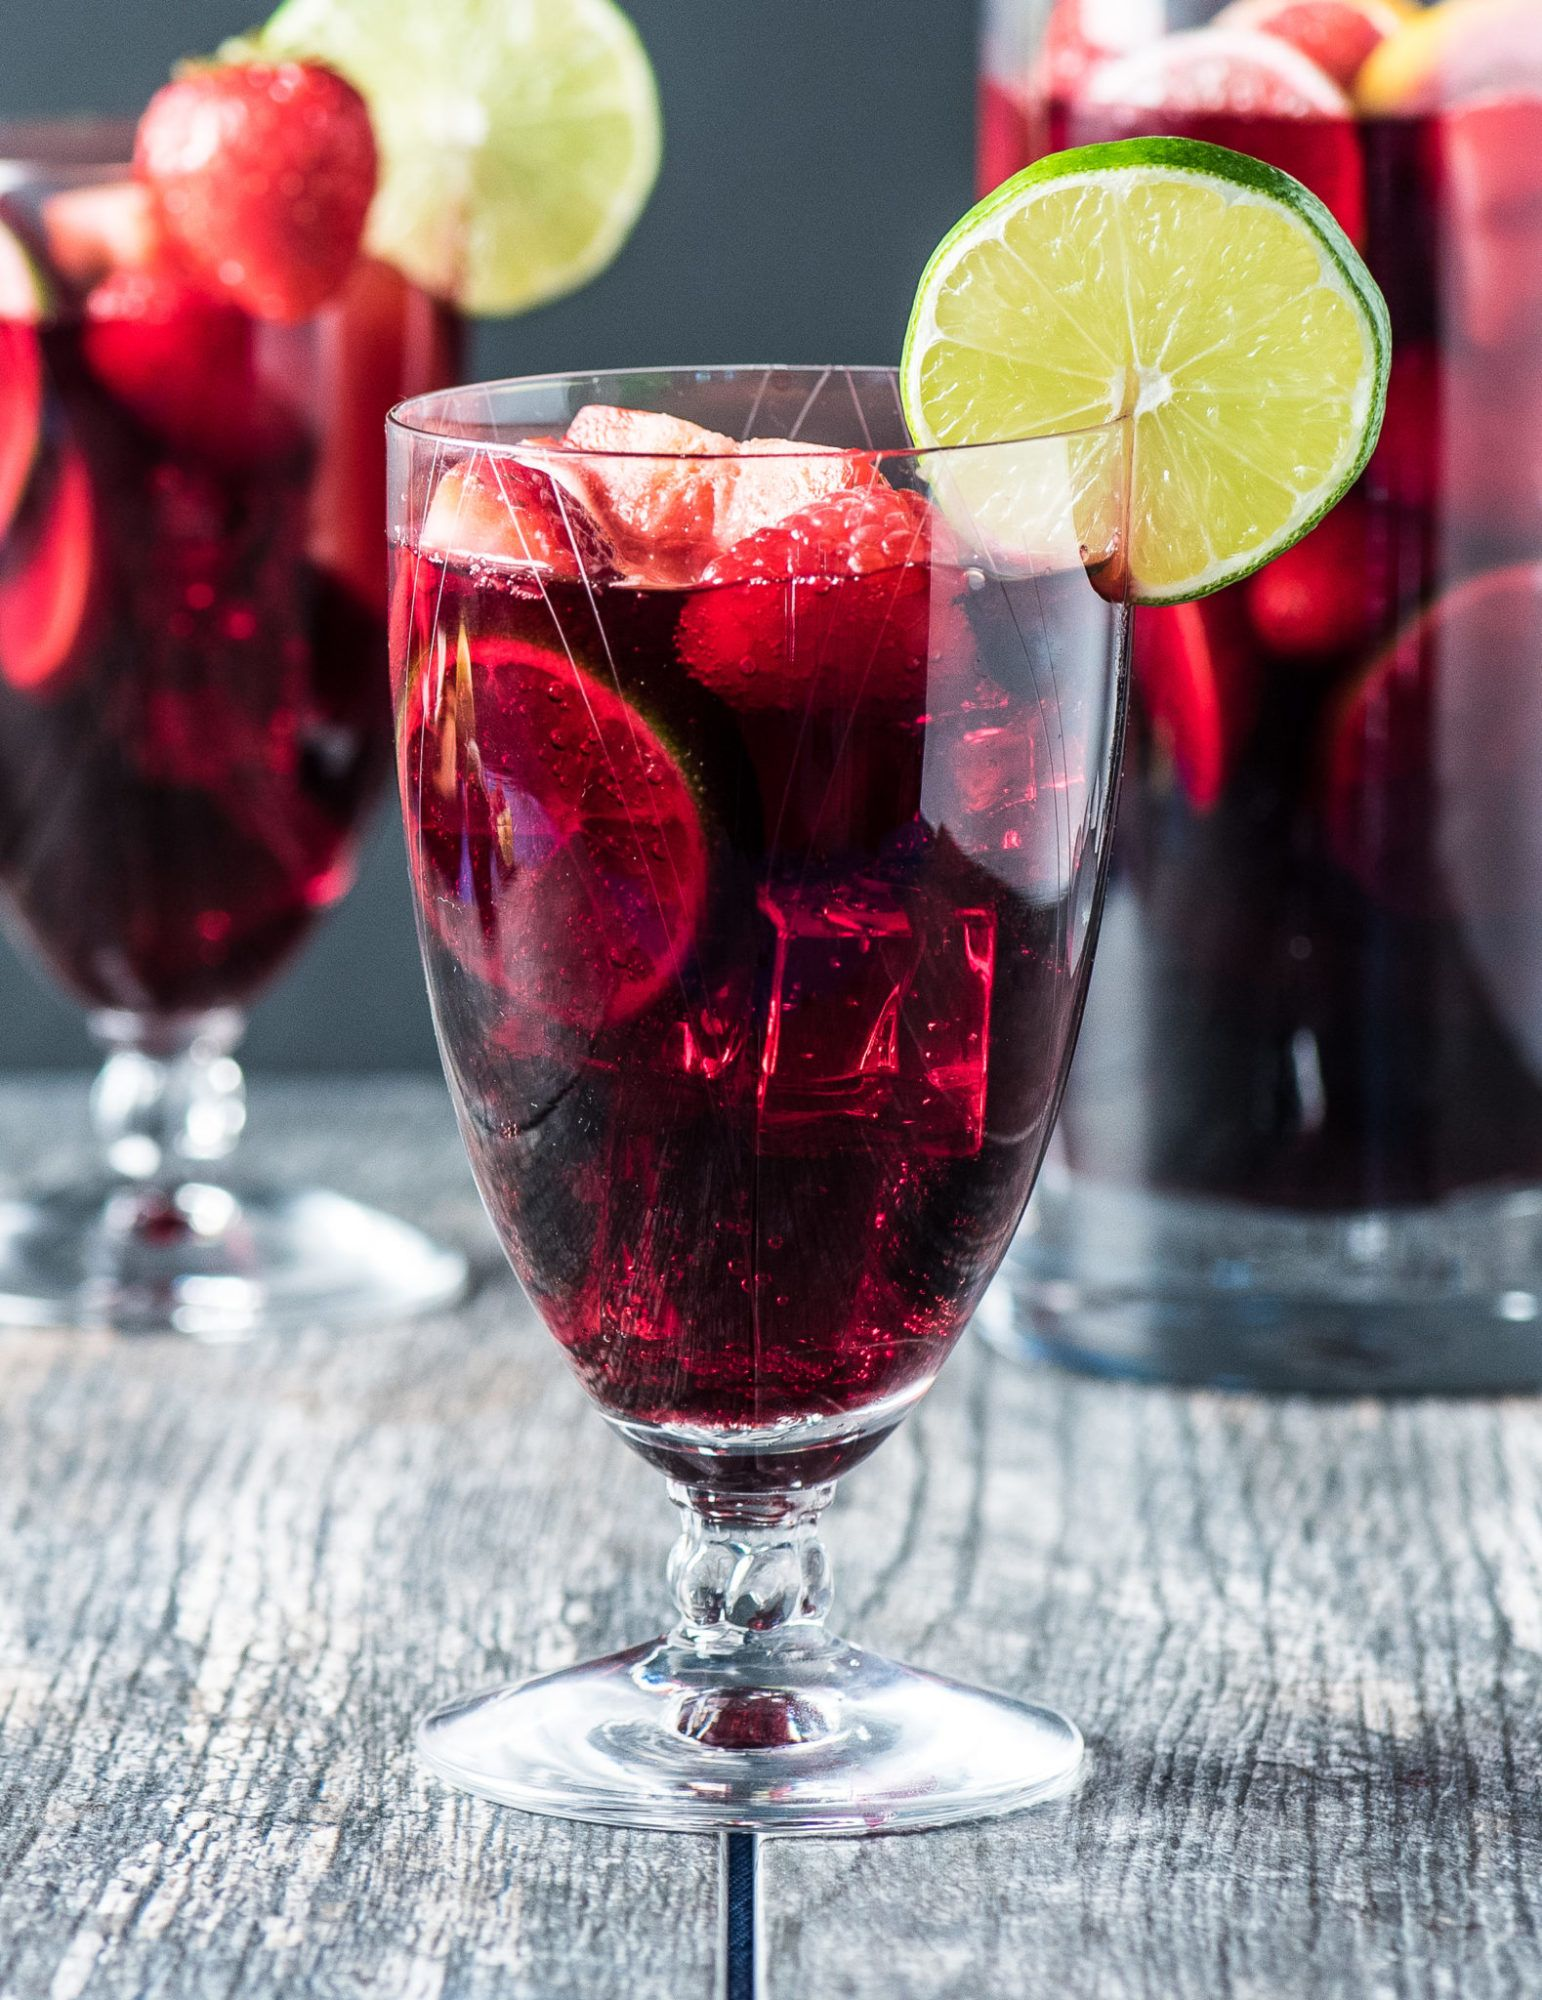 Low Carb Red Sangria Tasty Low Carb Recipe Red Sangria Winter Sangria Recipes Red Sangria Recipes